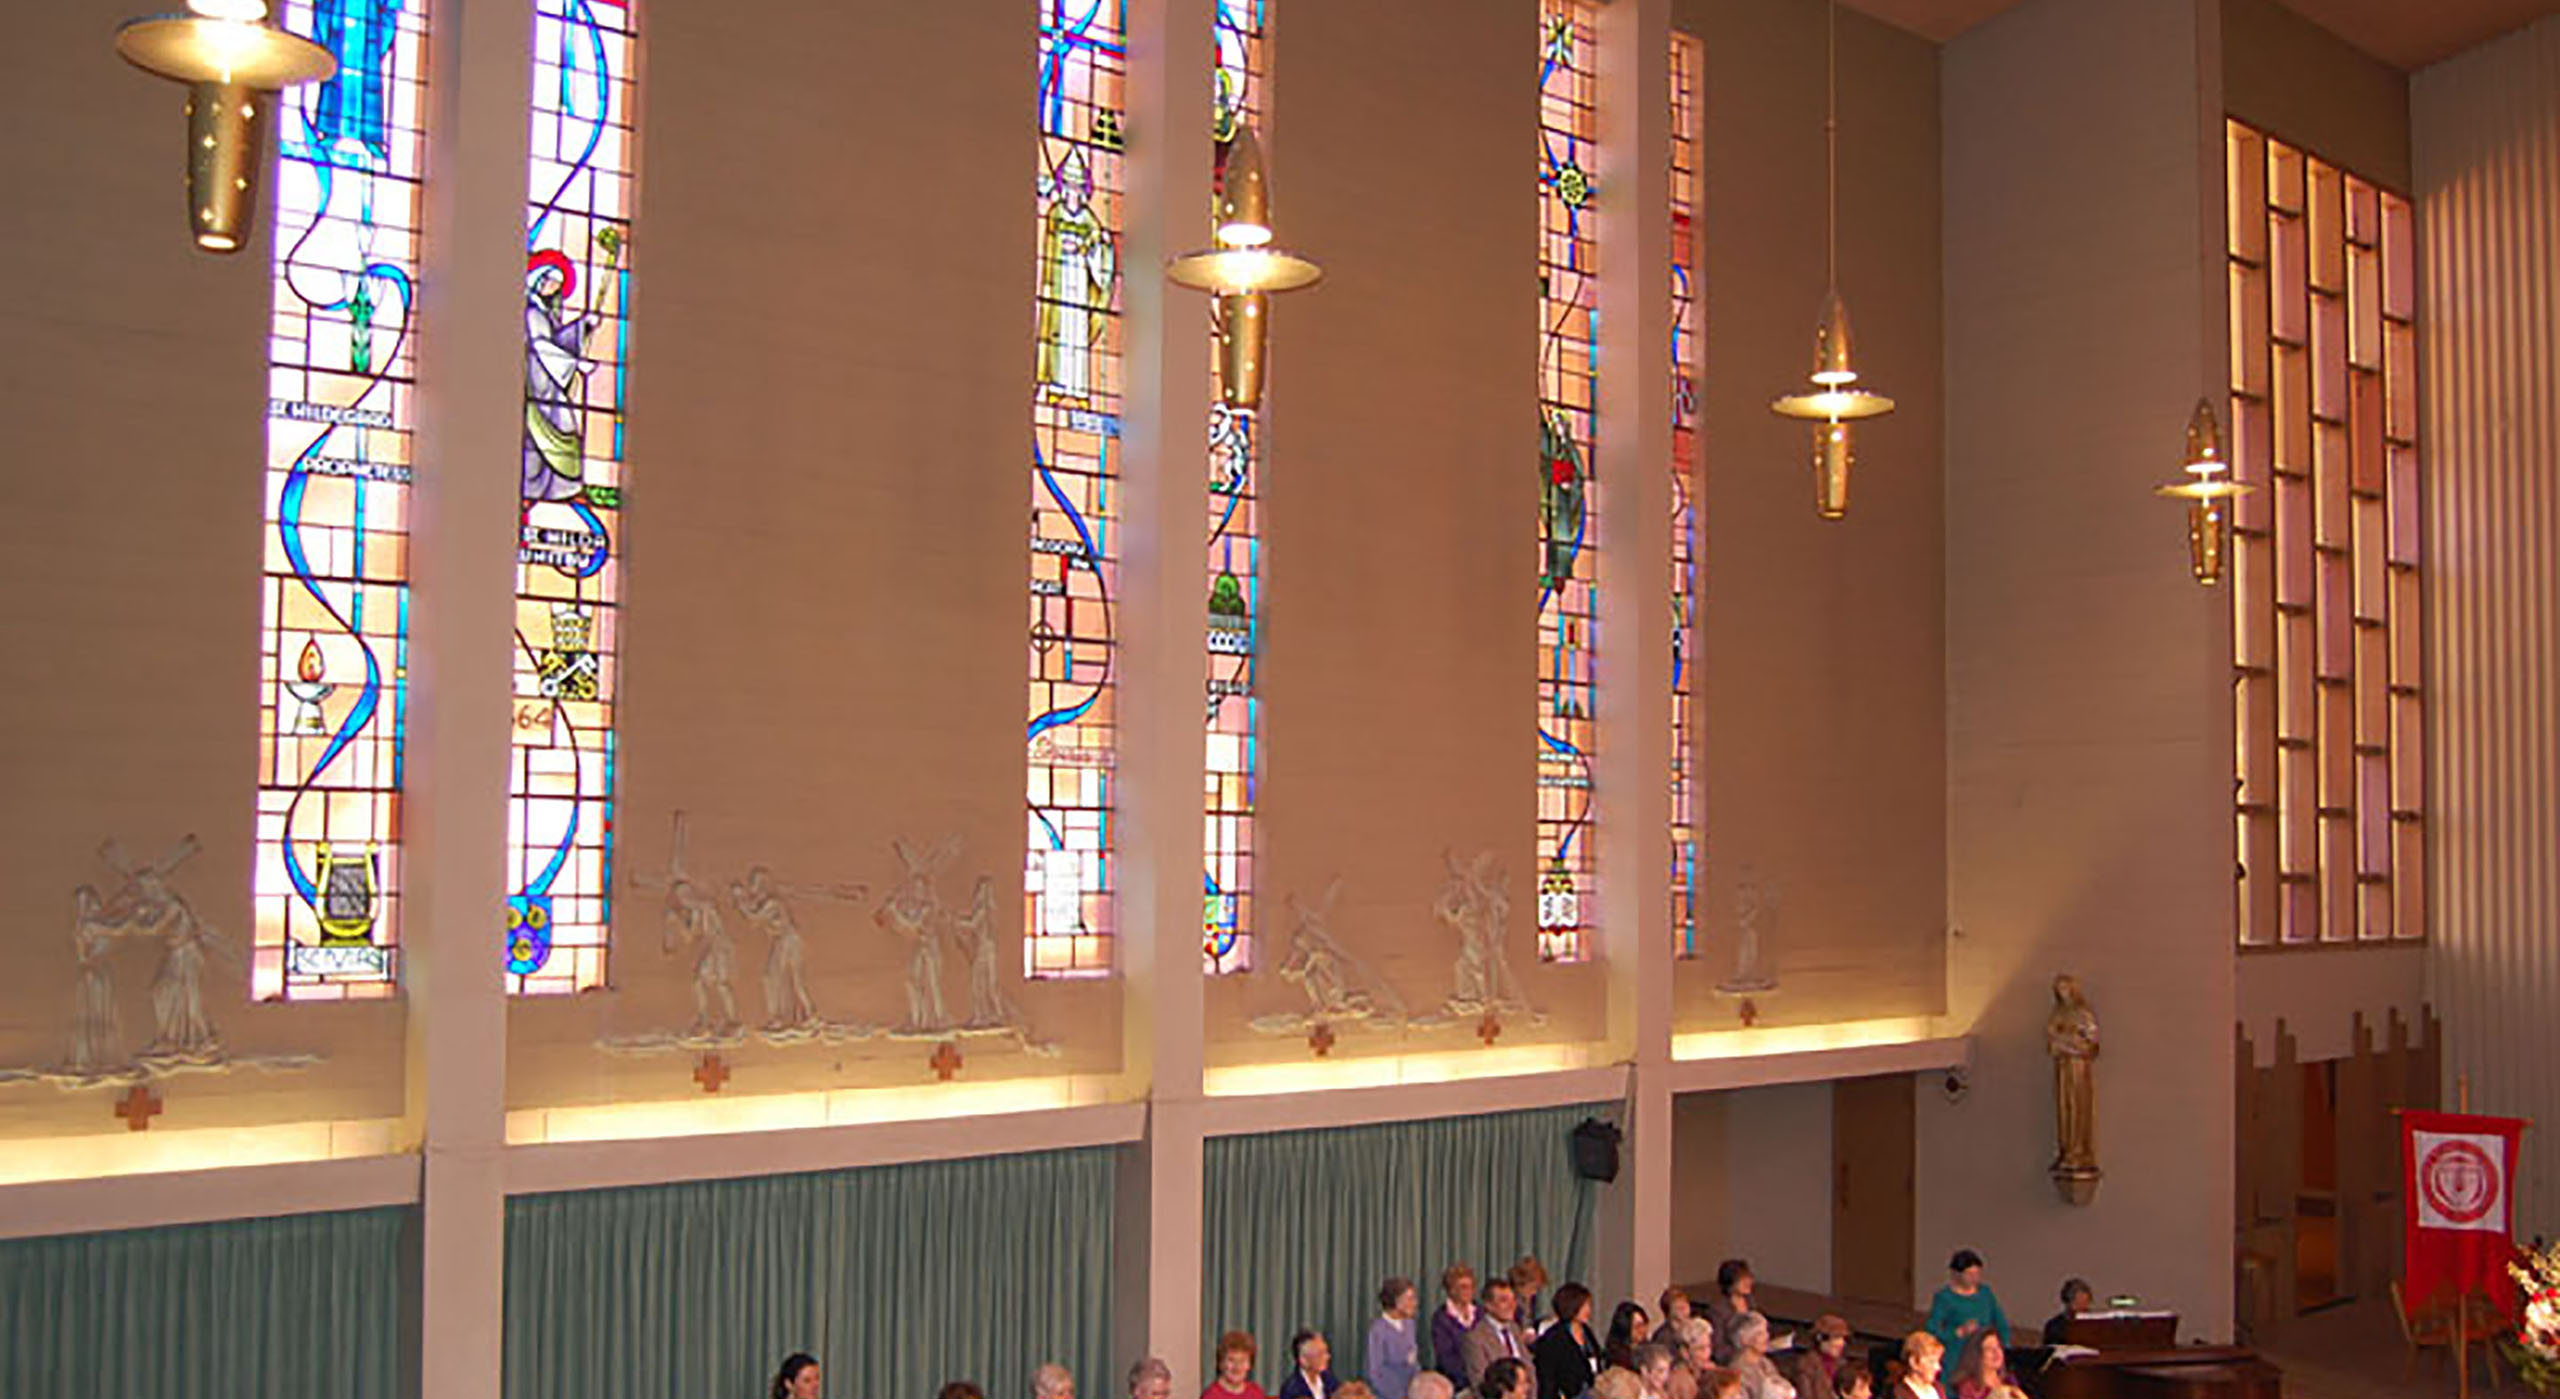 stained glass windows in church with attendants standing below